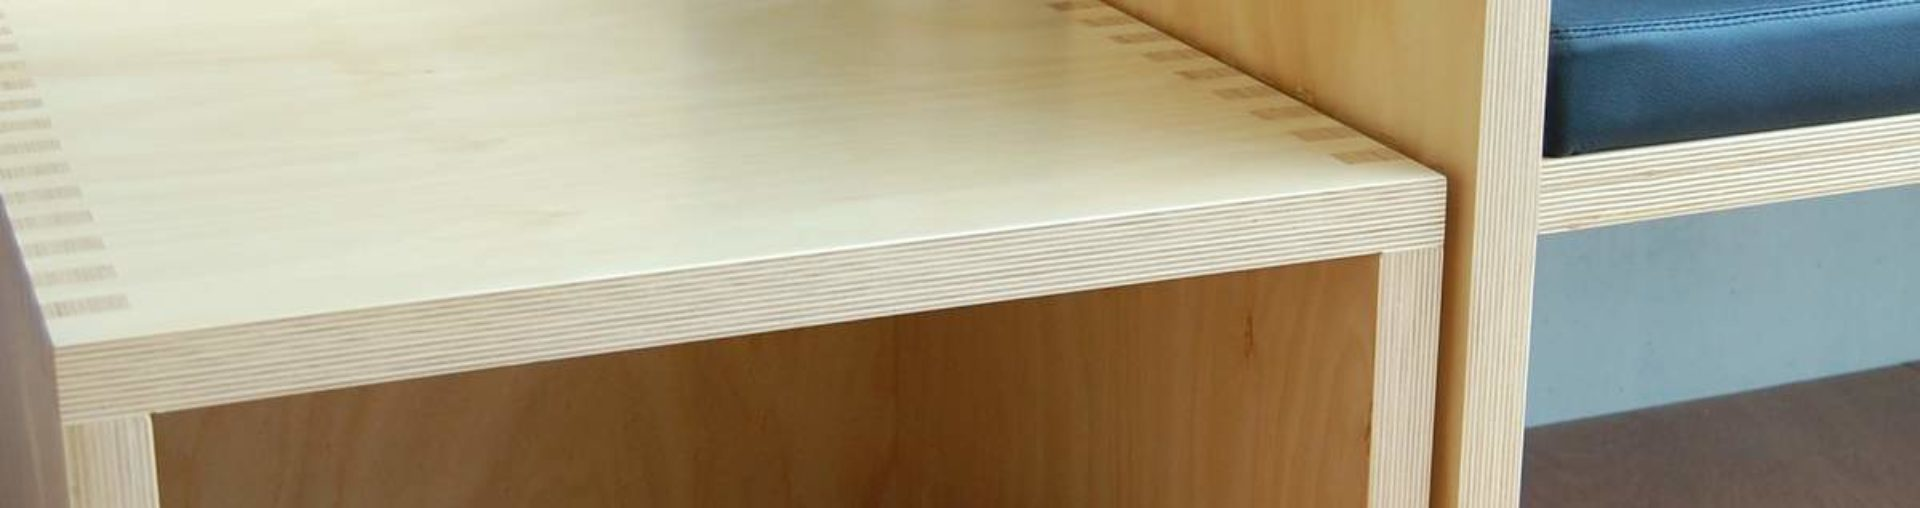 Advantages of Plywood | Advantages of using Plywood over ...